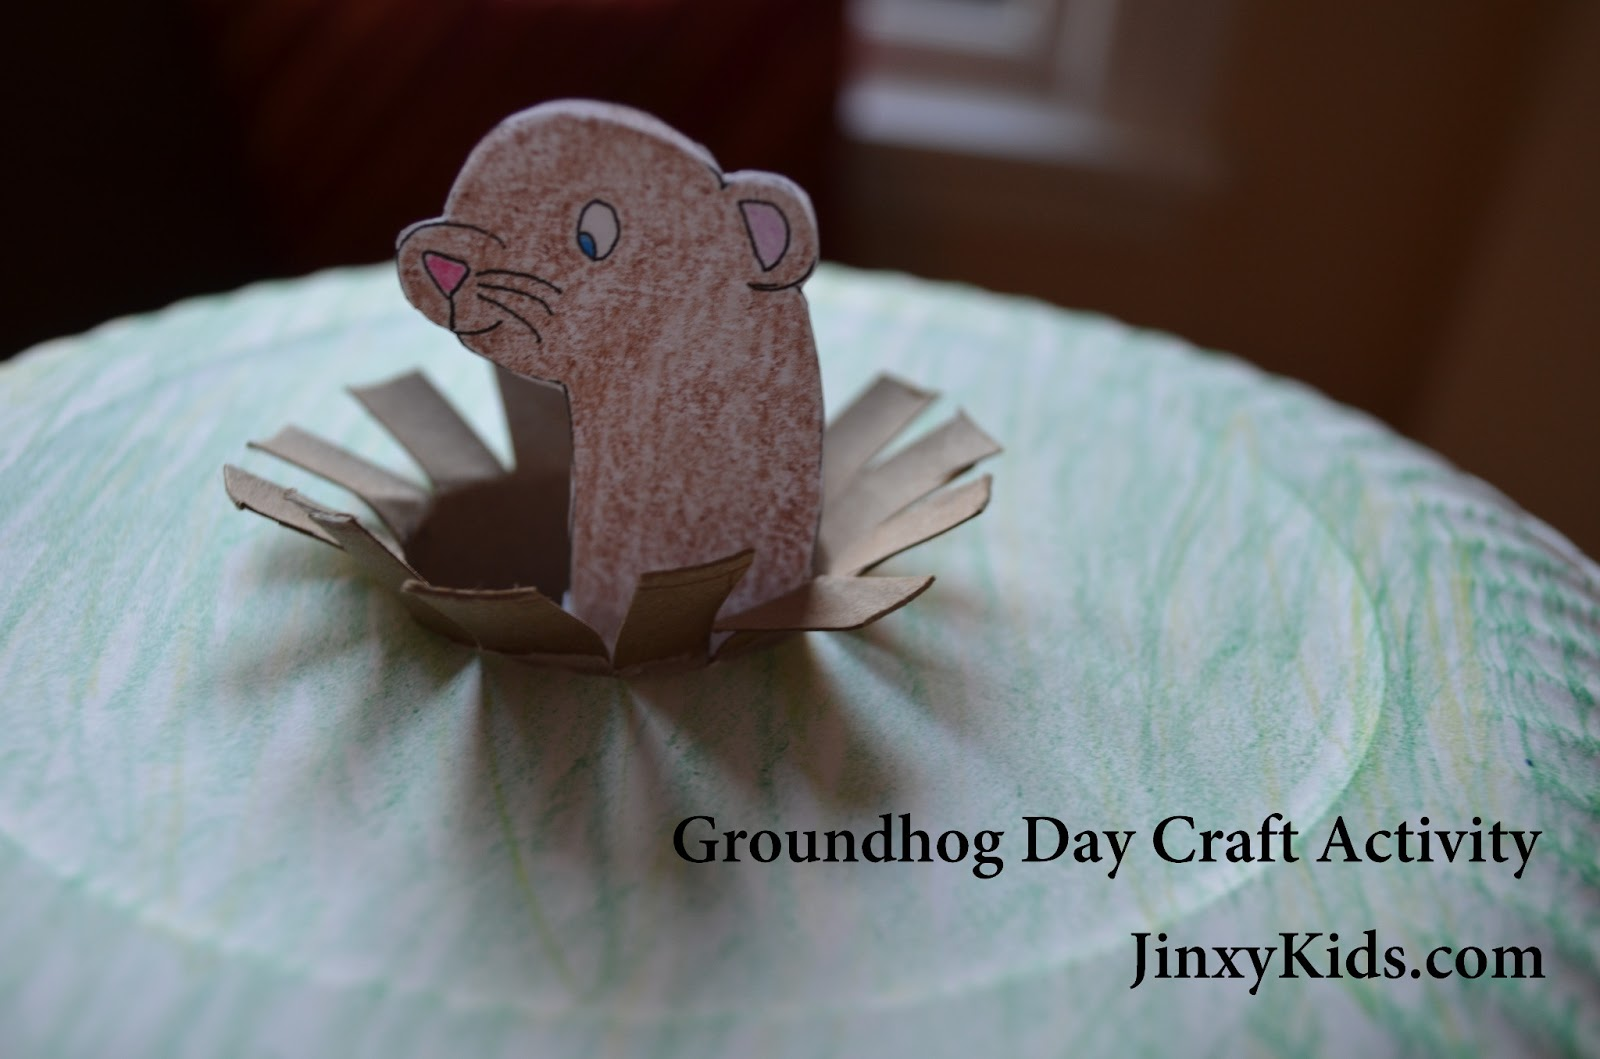 photograph relating to Ground Hog Printable referred to as Groundhog Working day Craft Game with Printable Habit - Jinxy Little ones